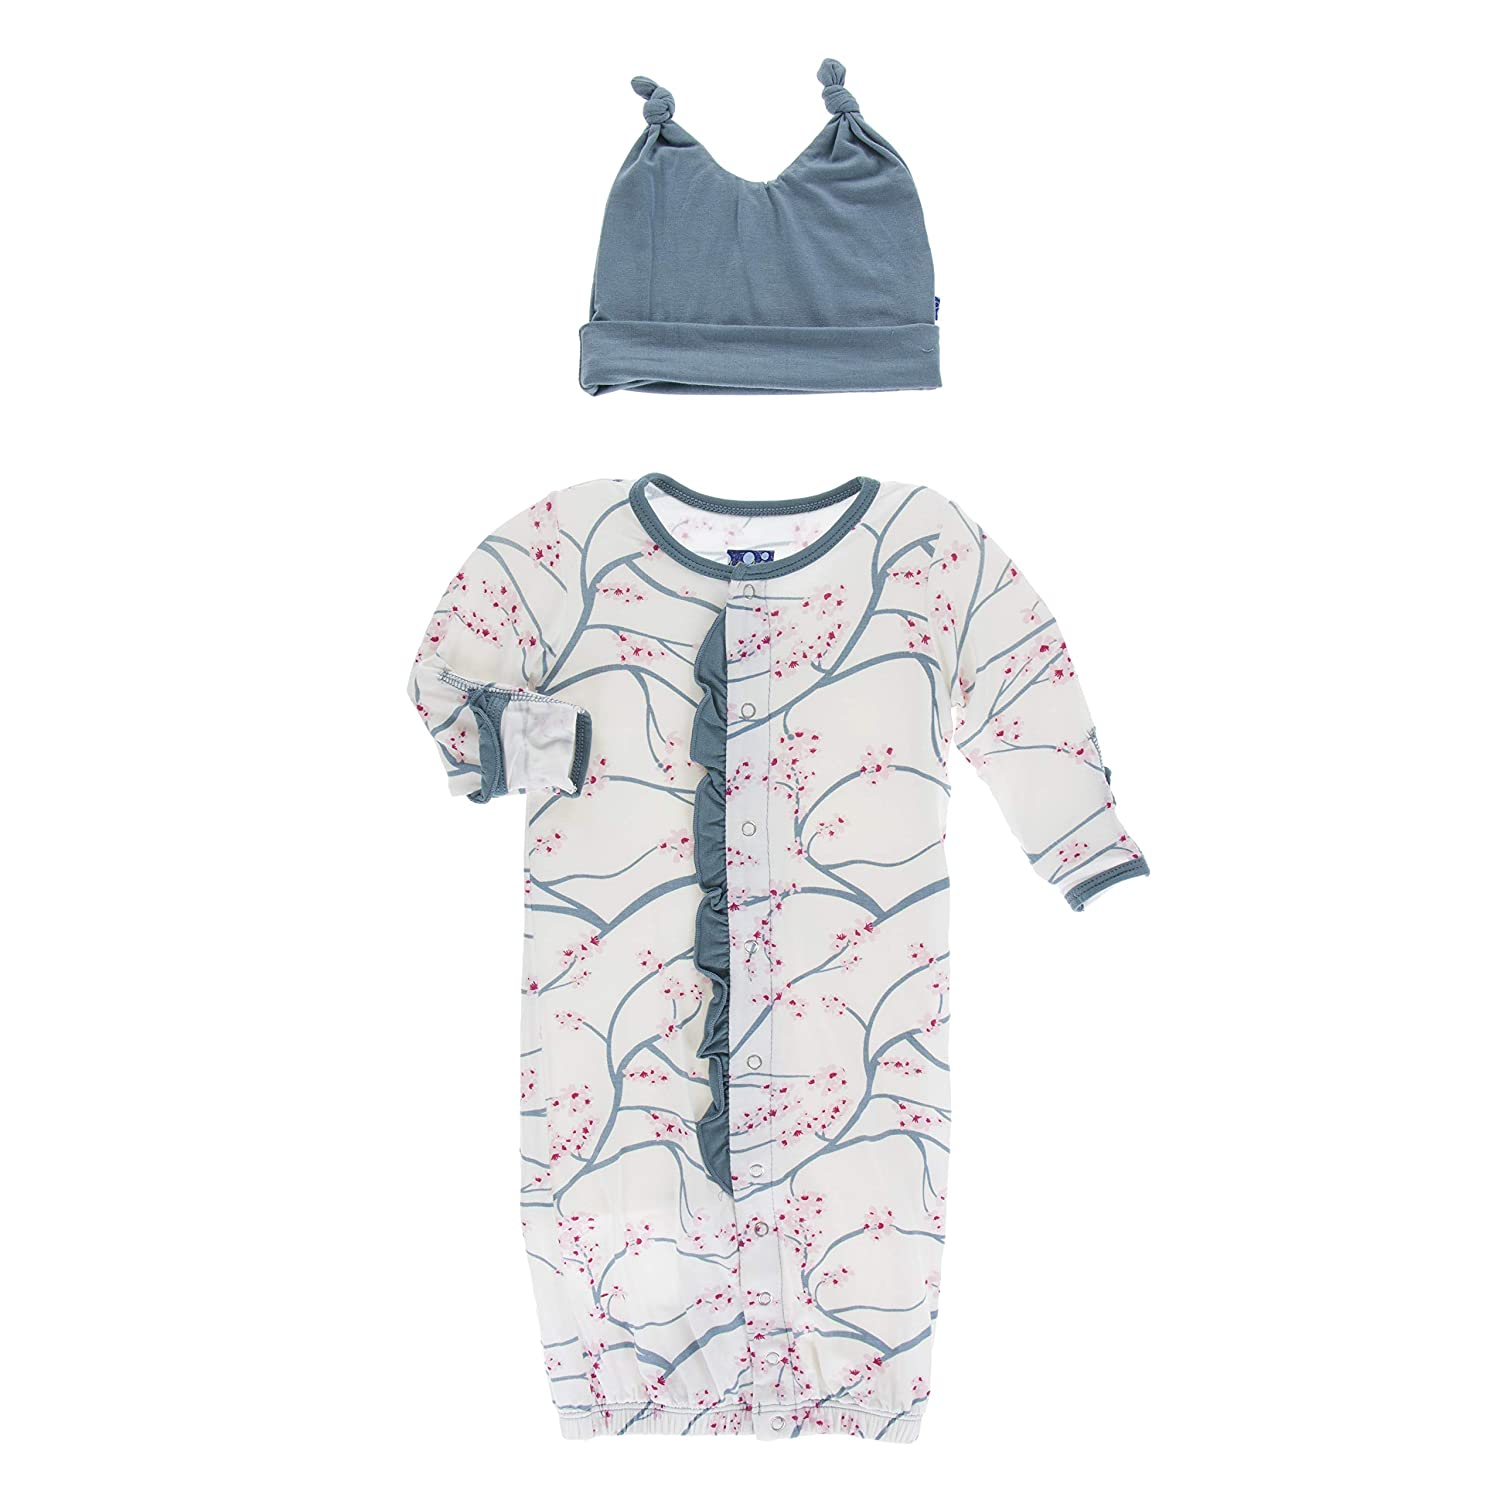 KicKee Pants Print Ruffle Layette Gown Converter and Double Knot Hat Set in Natural Japanese Cherry Tree 3-6 Months